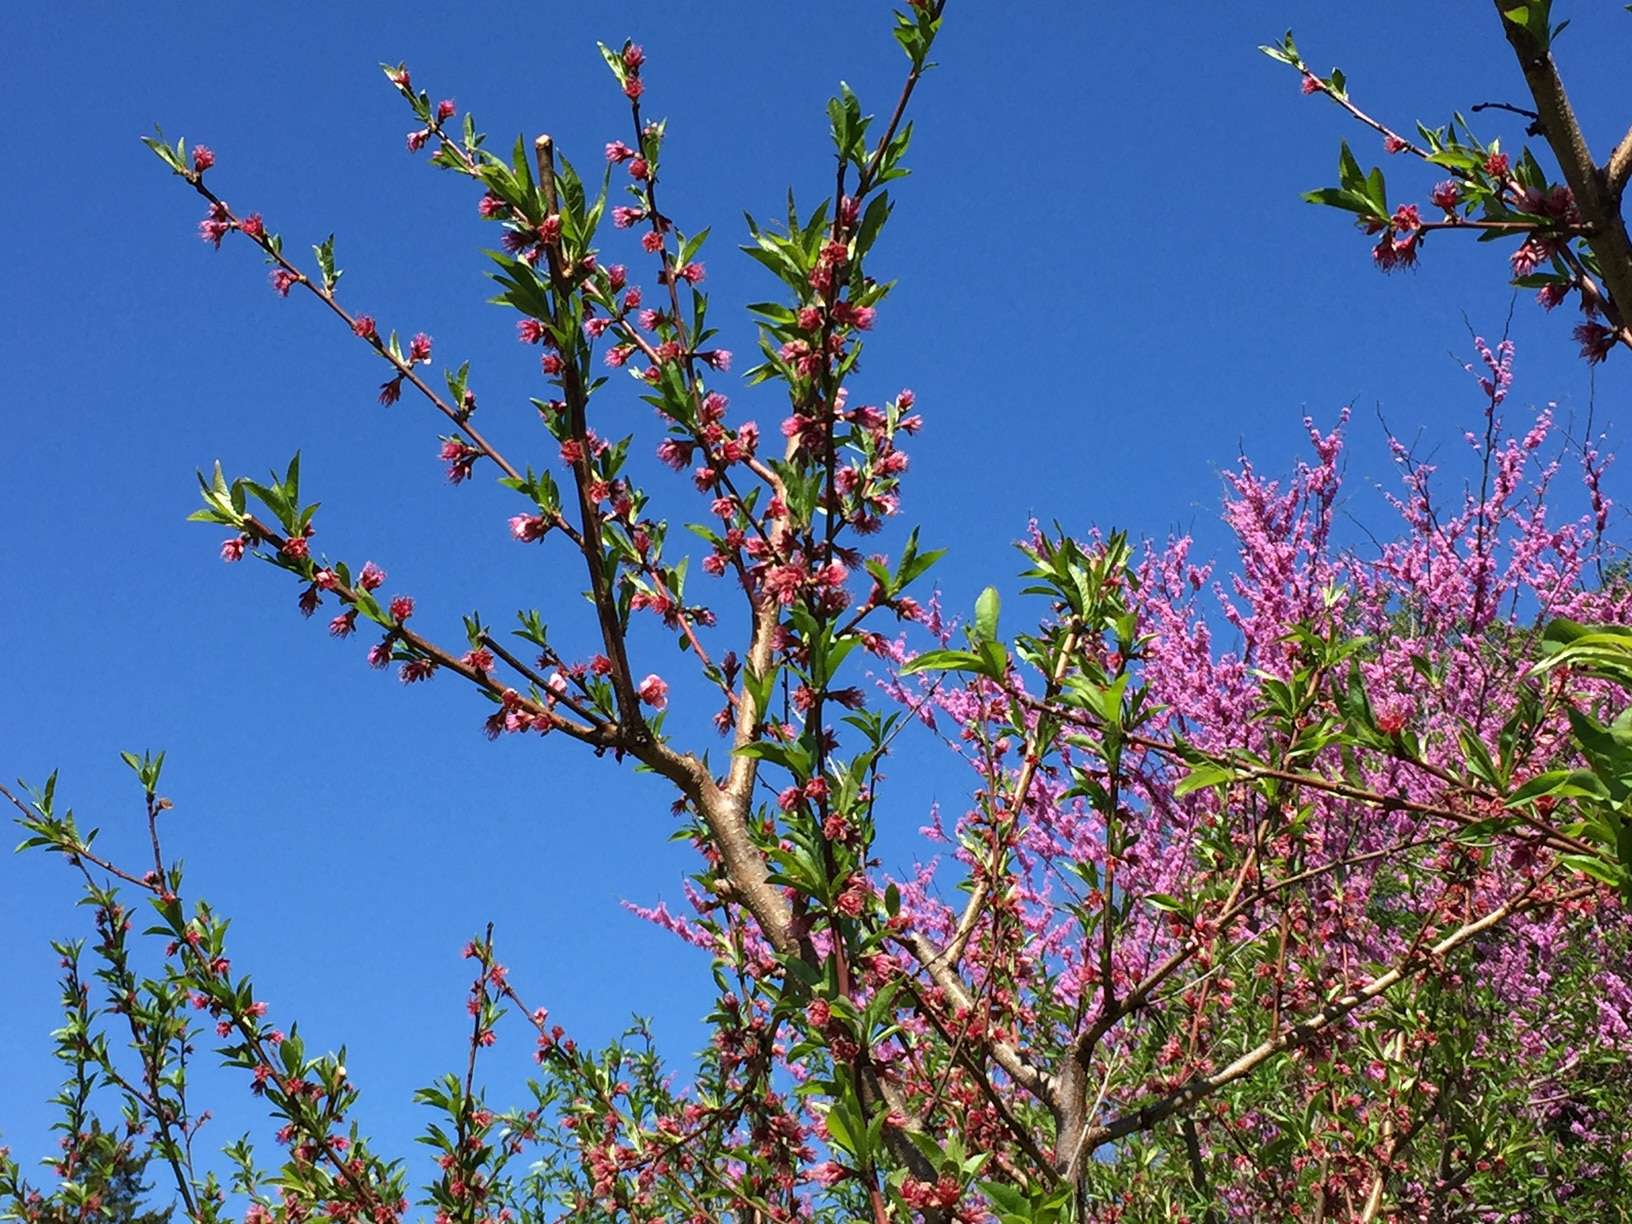 A photo of fruit trees blooming again a blue sky